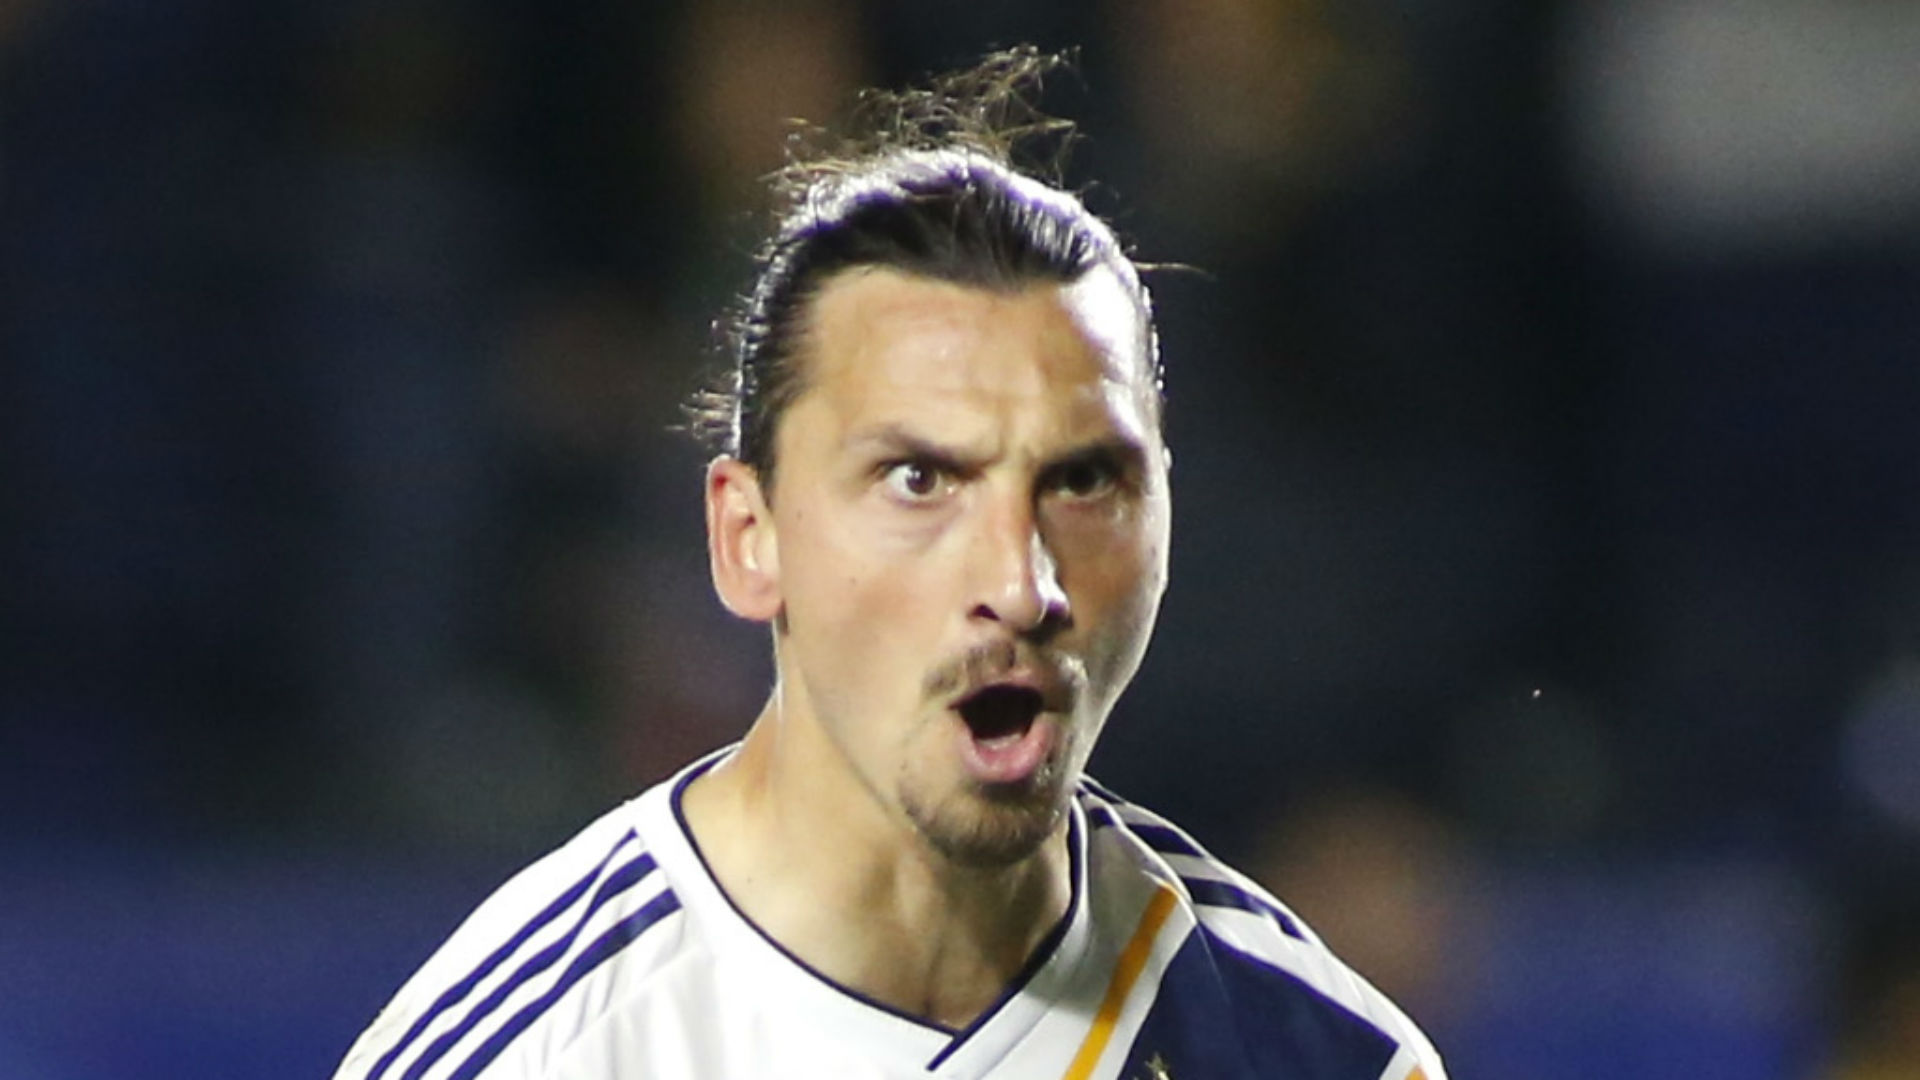 I have 300m in the bank and an island! - Ibrahimovic's team-mate details Galaxy rant